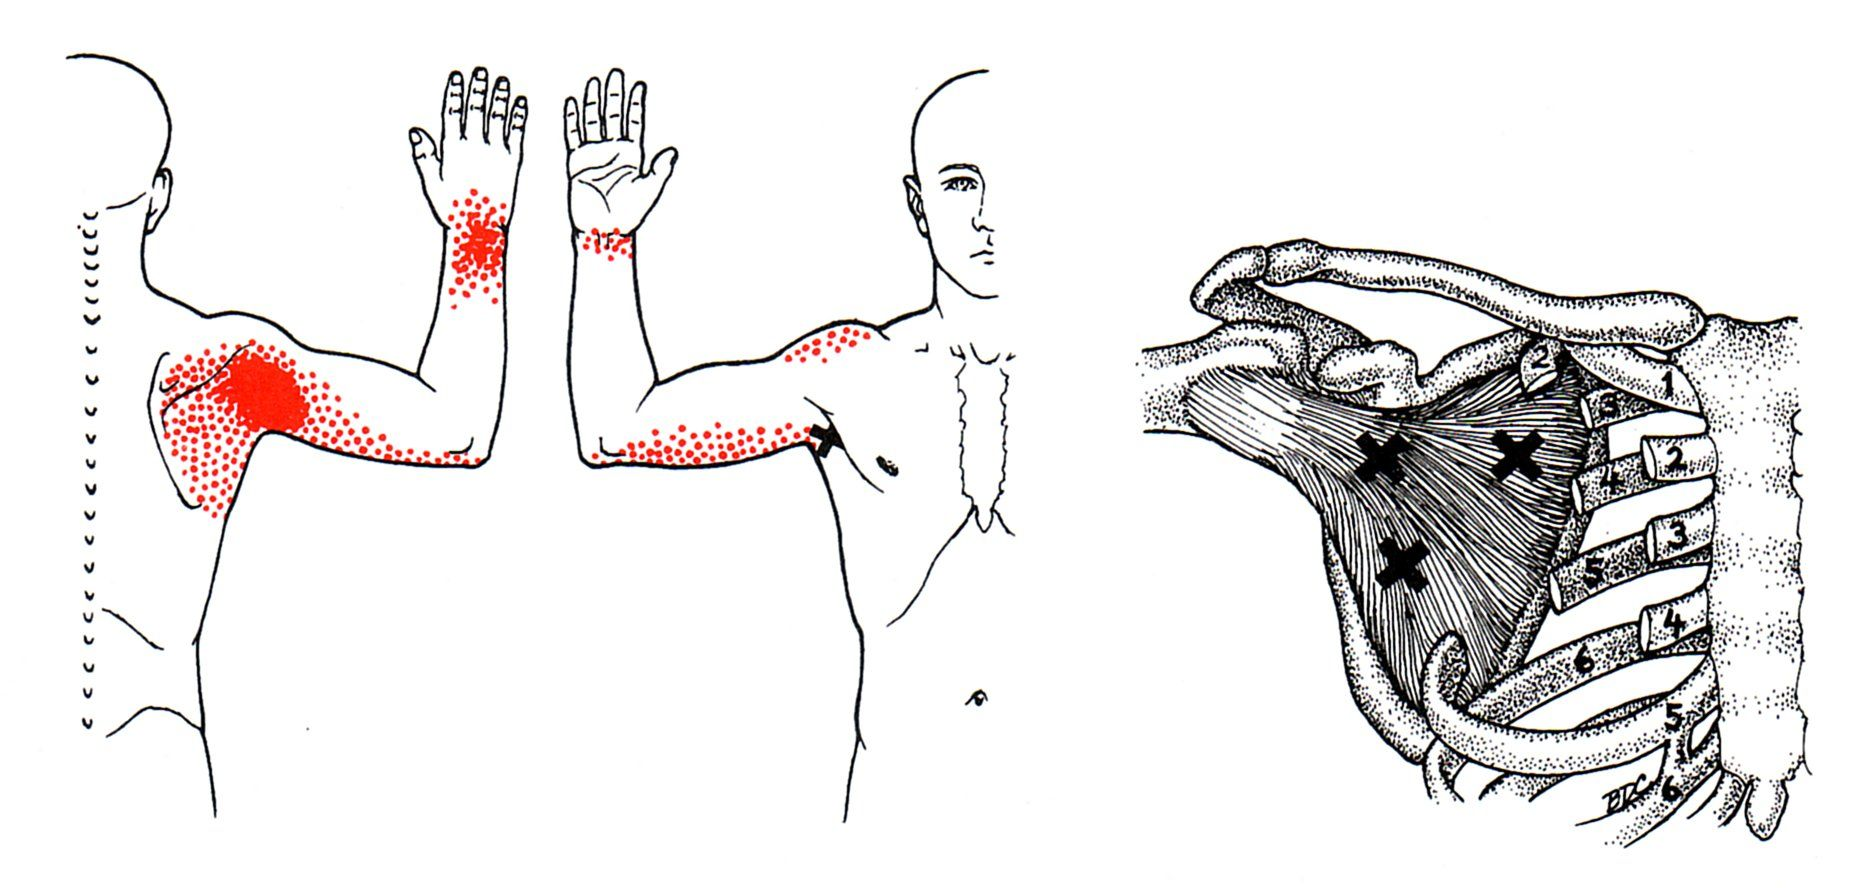 Unterschulterblattmuskel | The Trigger Point & Referred Pain Guide ...